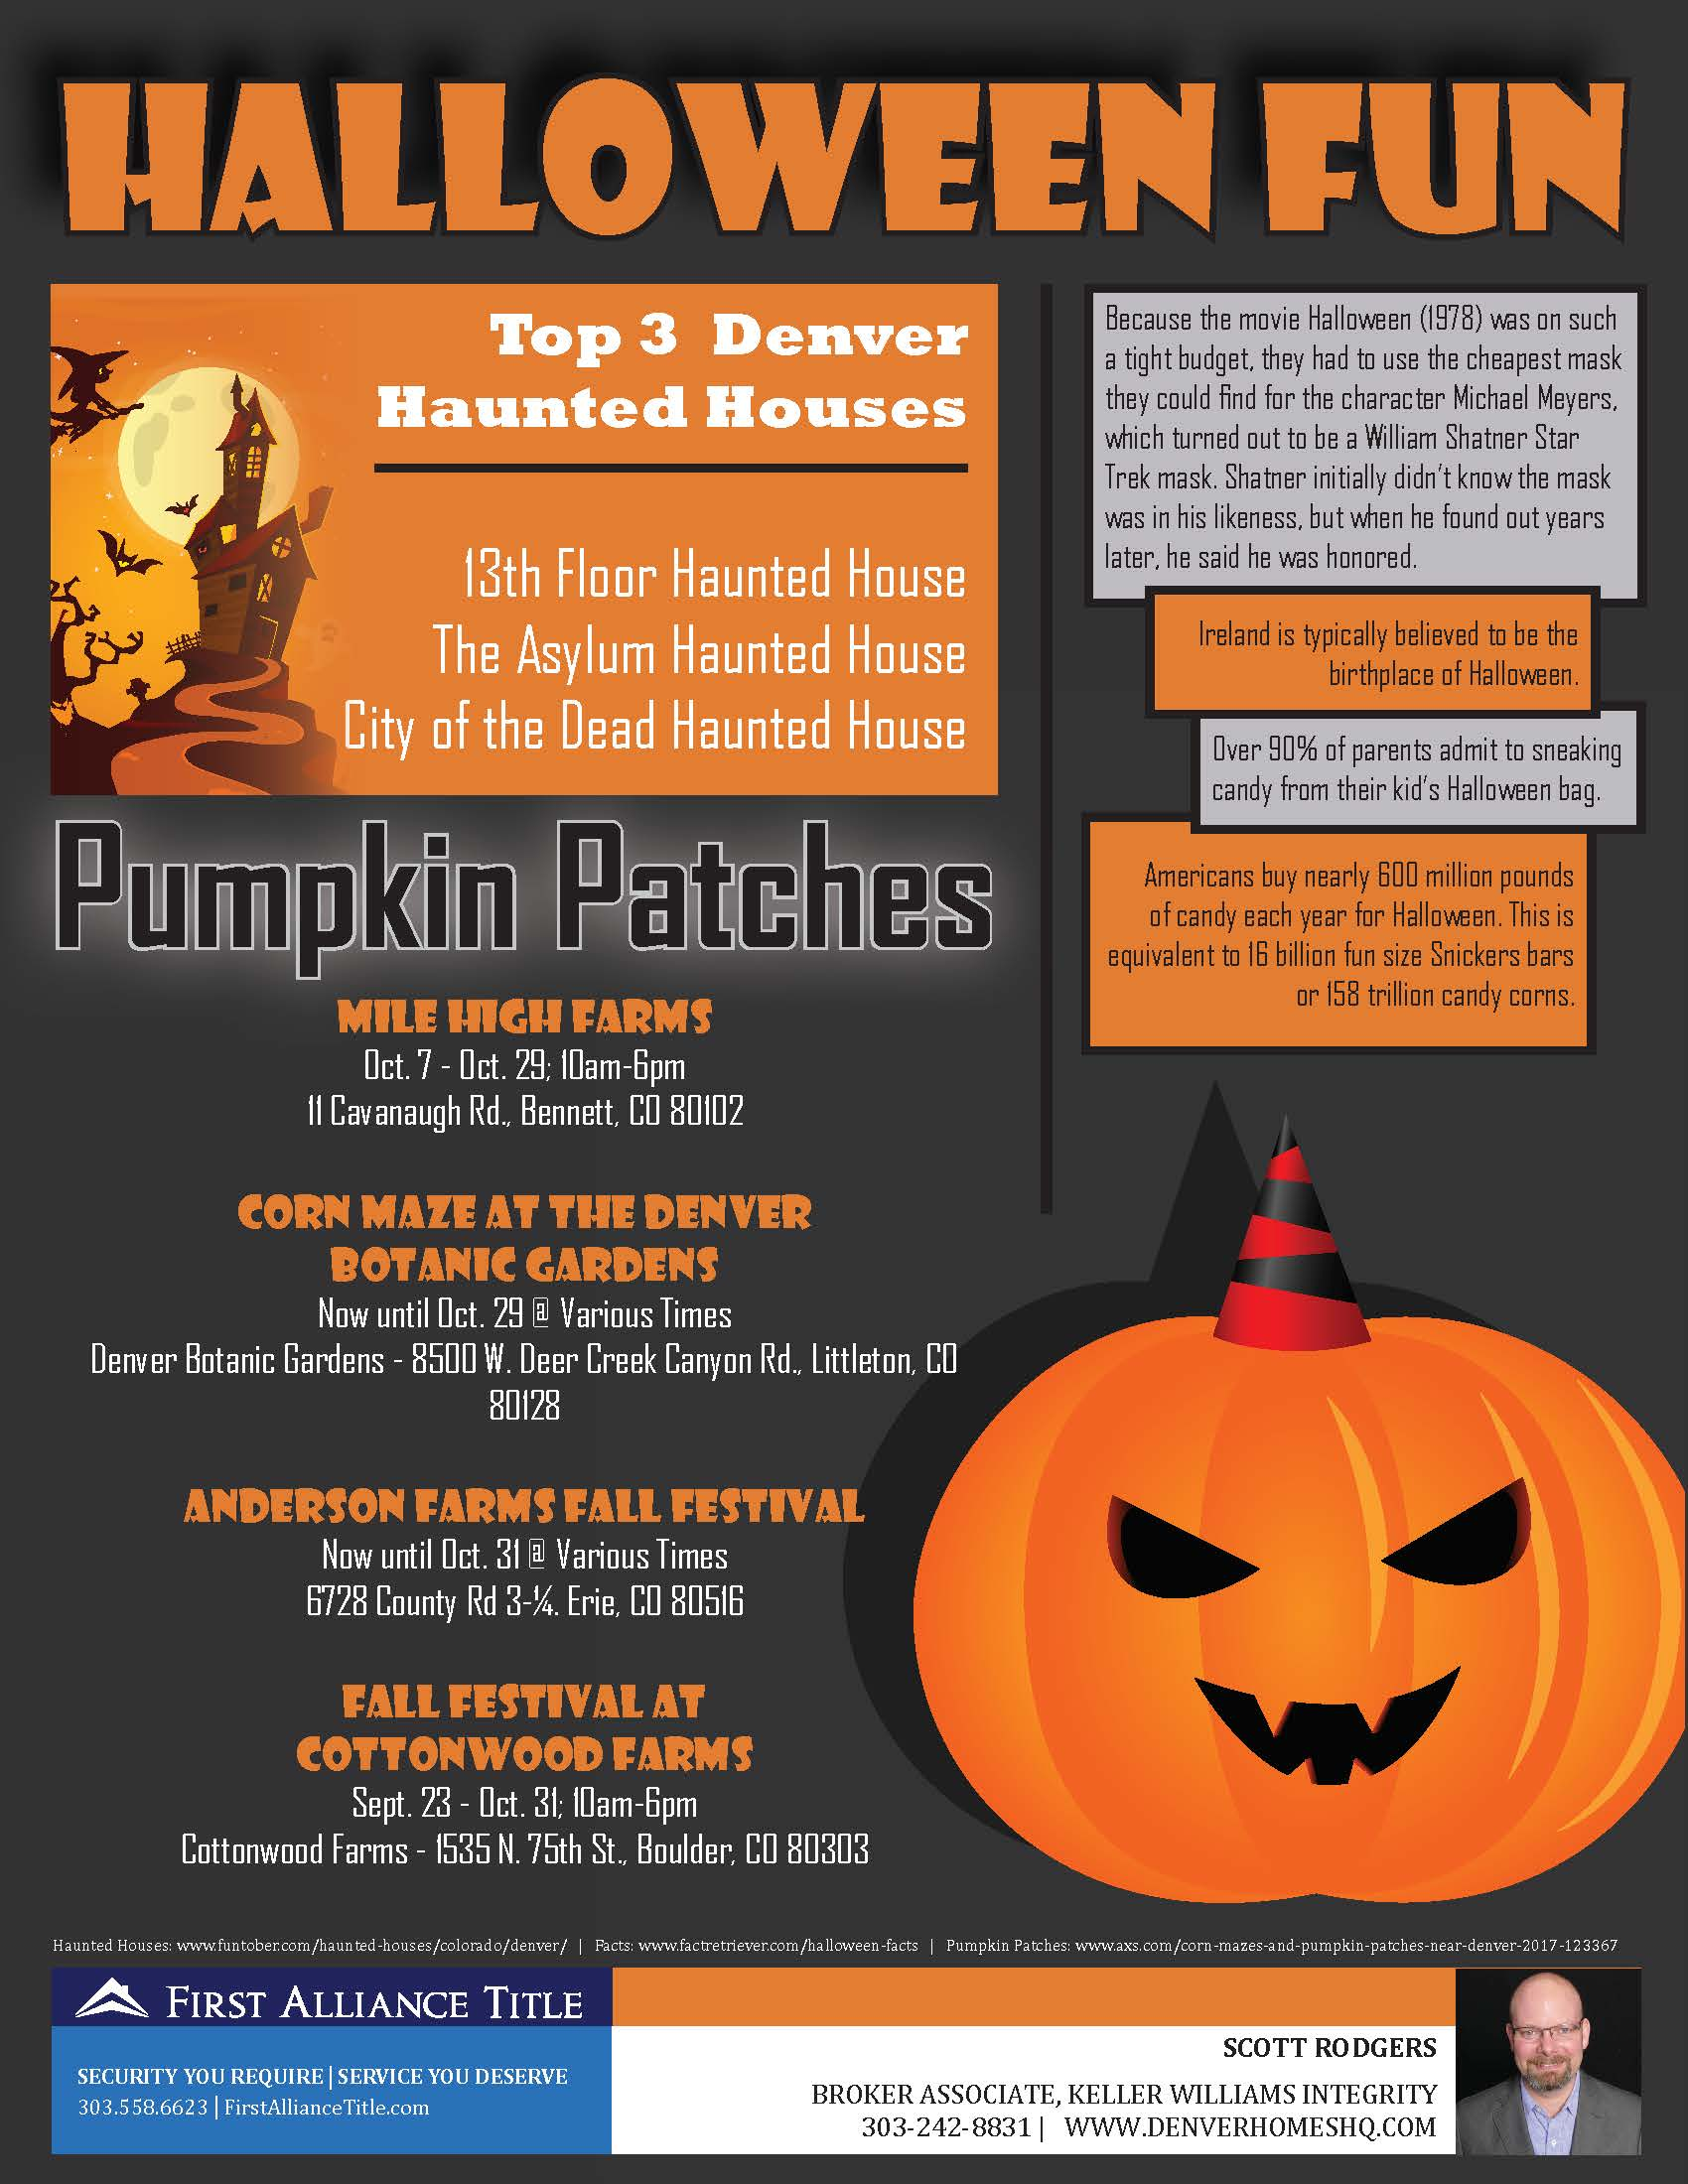 Denver Halloween Haunted Houses And Pumpkin Patches